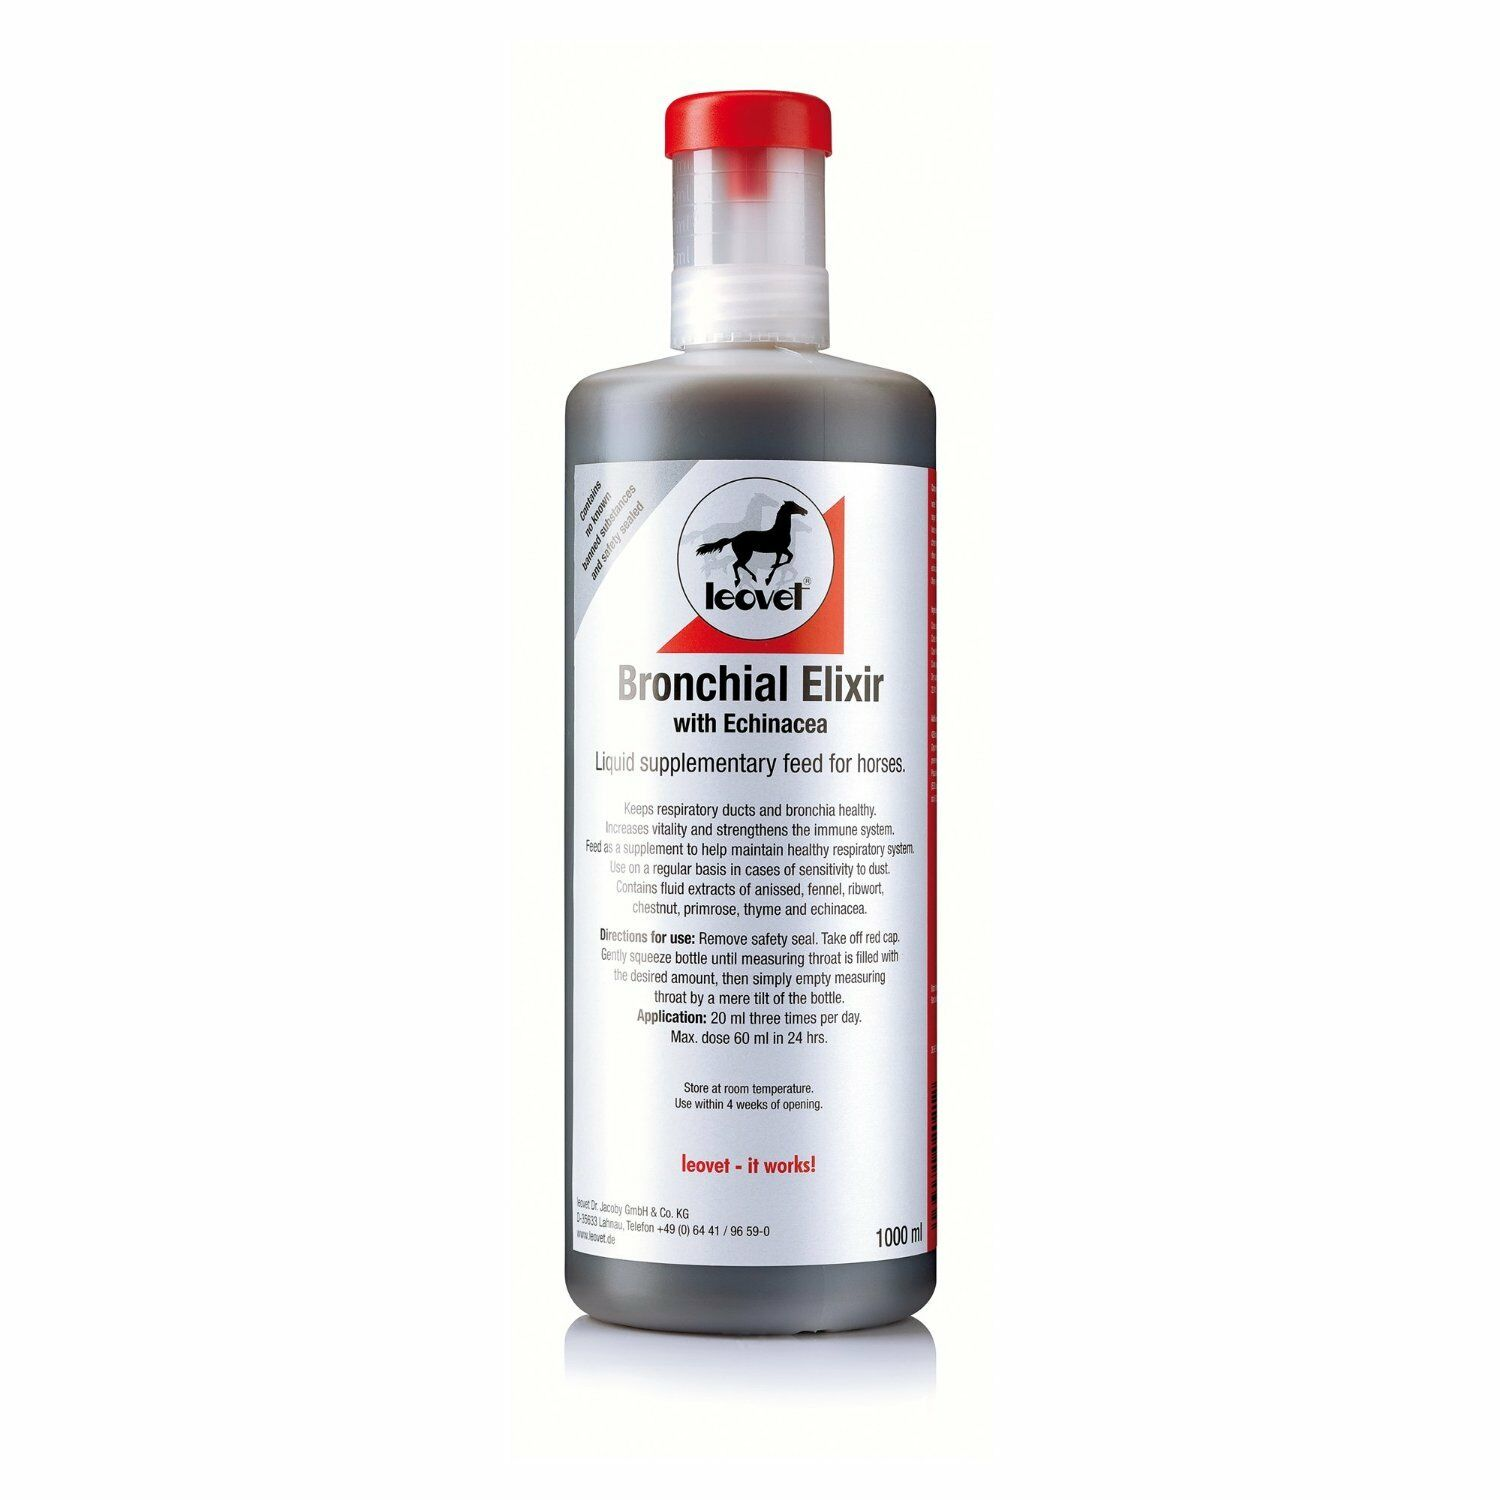 LEOVET BRONCHIAL ELIXIER ELIXIER BRONCHIAL 2500ml, 1L = 19,16 EUR 79ded2